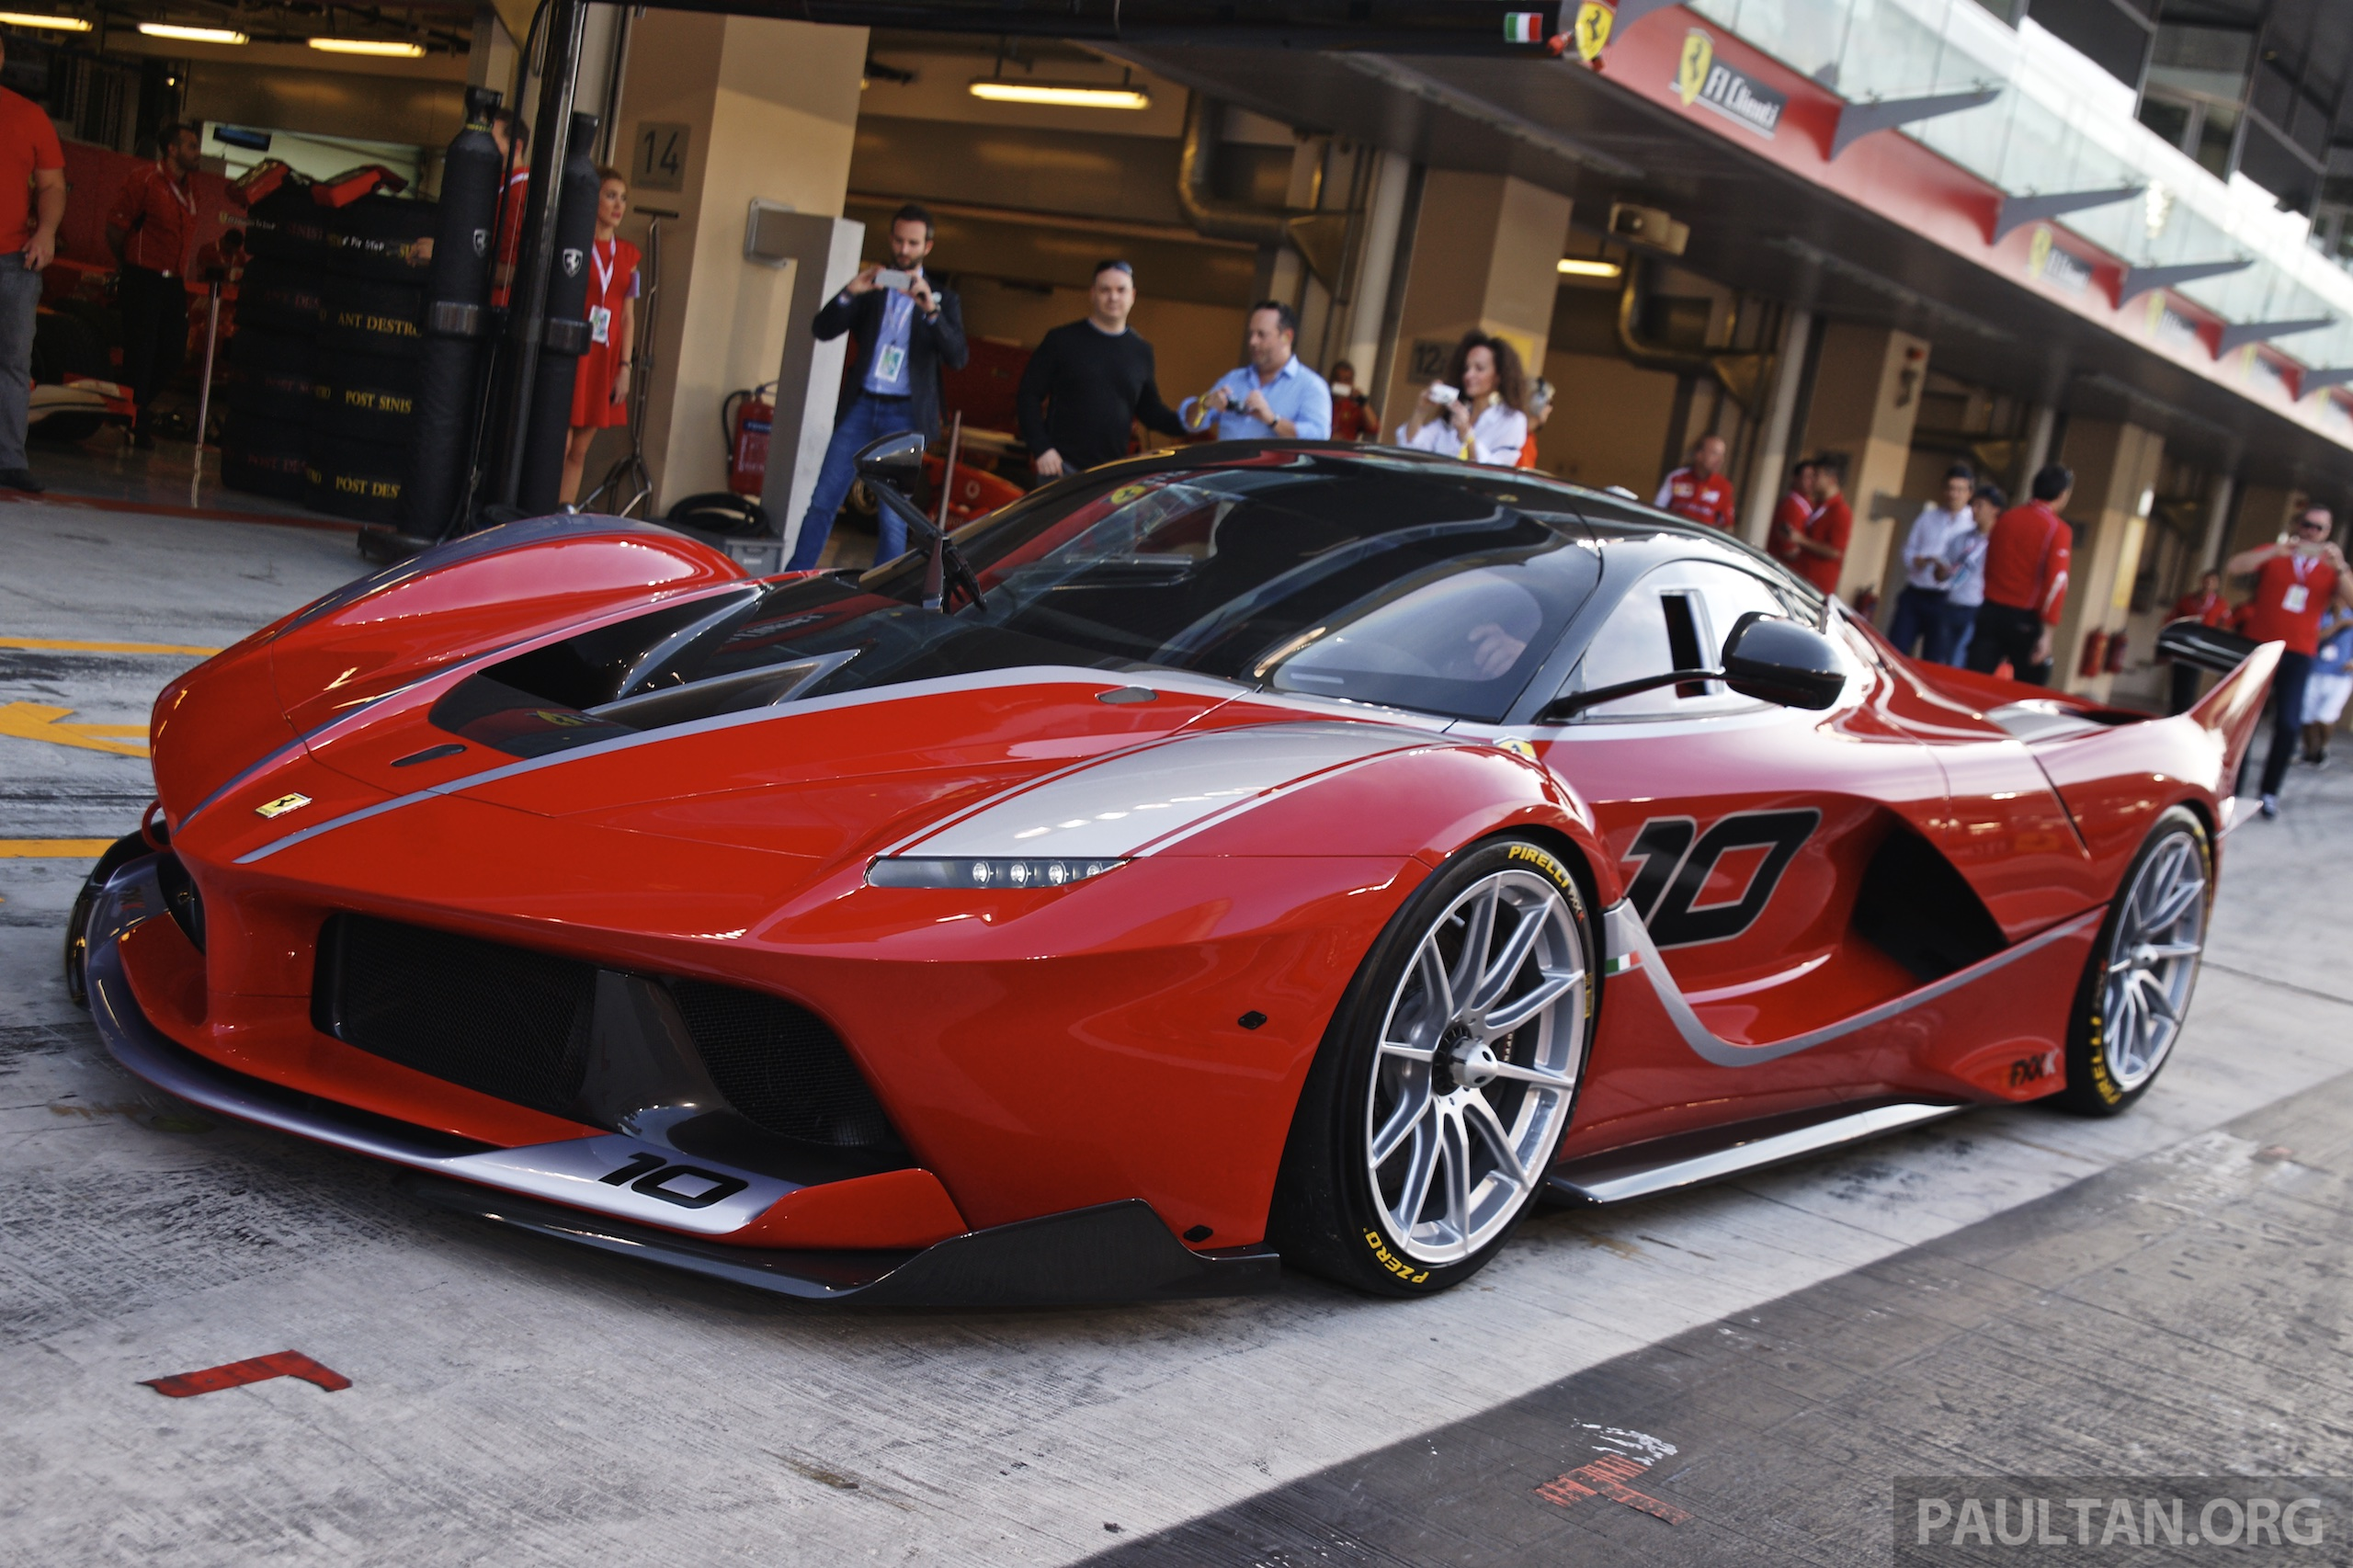 gallery 1 050 hp ferrari fxx k at yas marina circuit image 294188. Black Bedroom Furniture Sets. Home Design Ideas